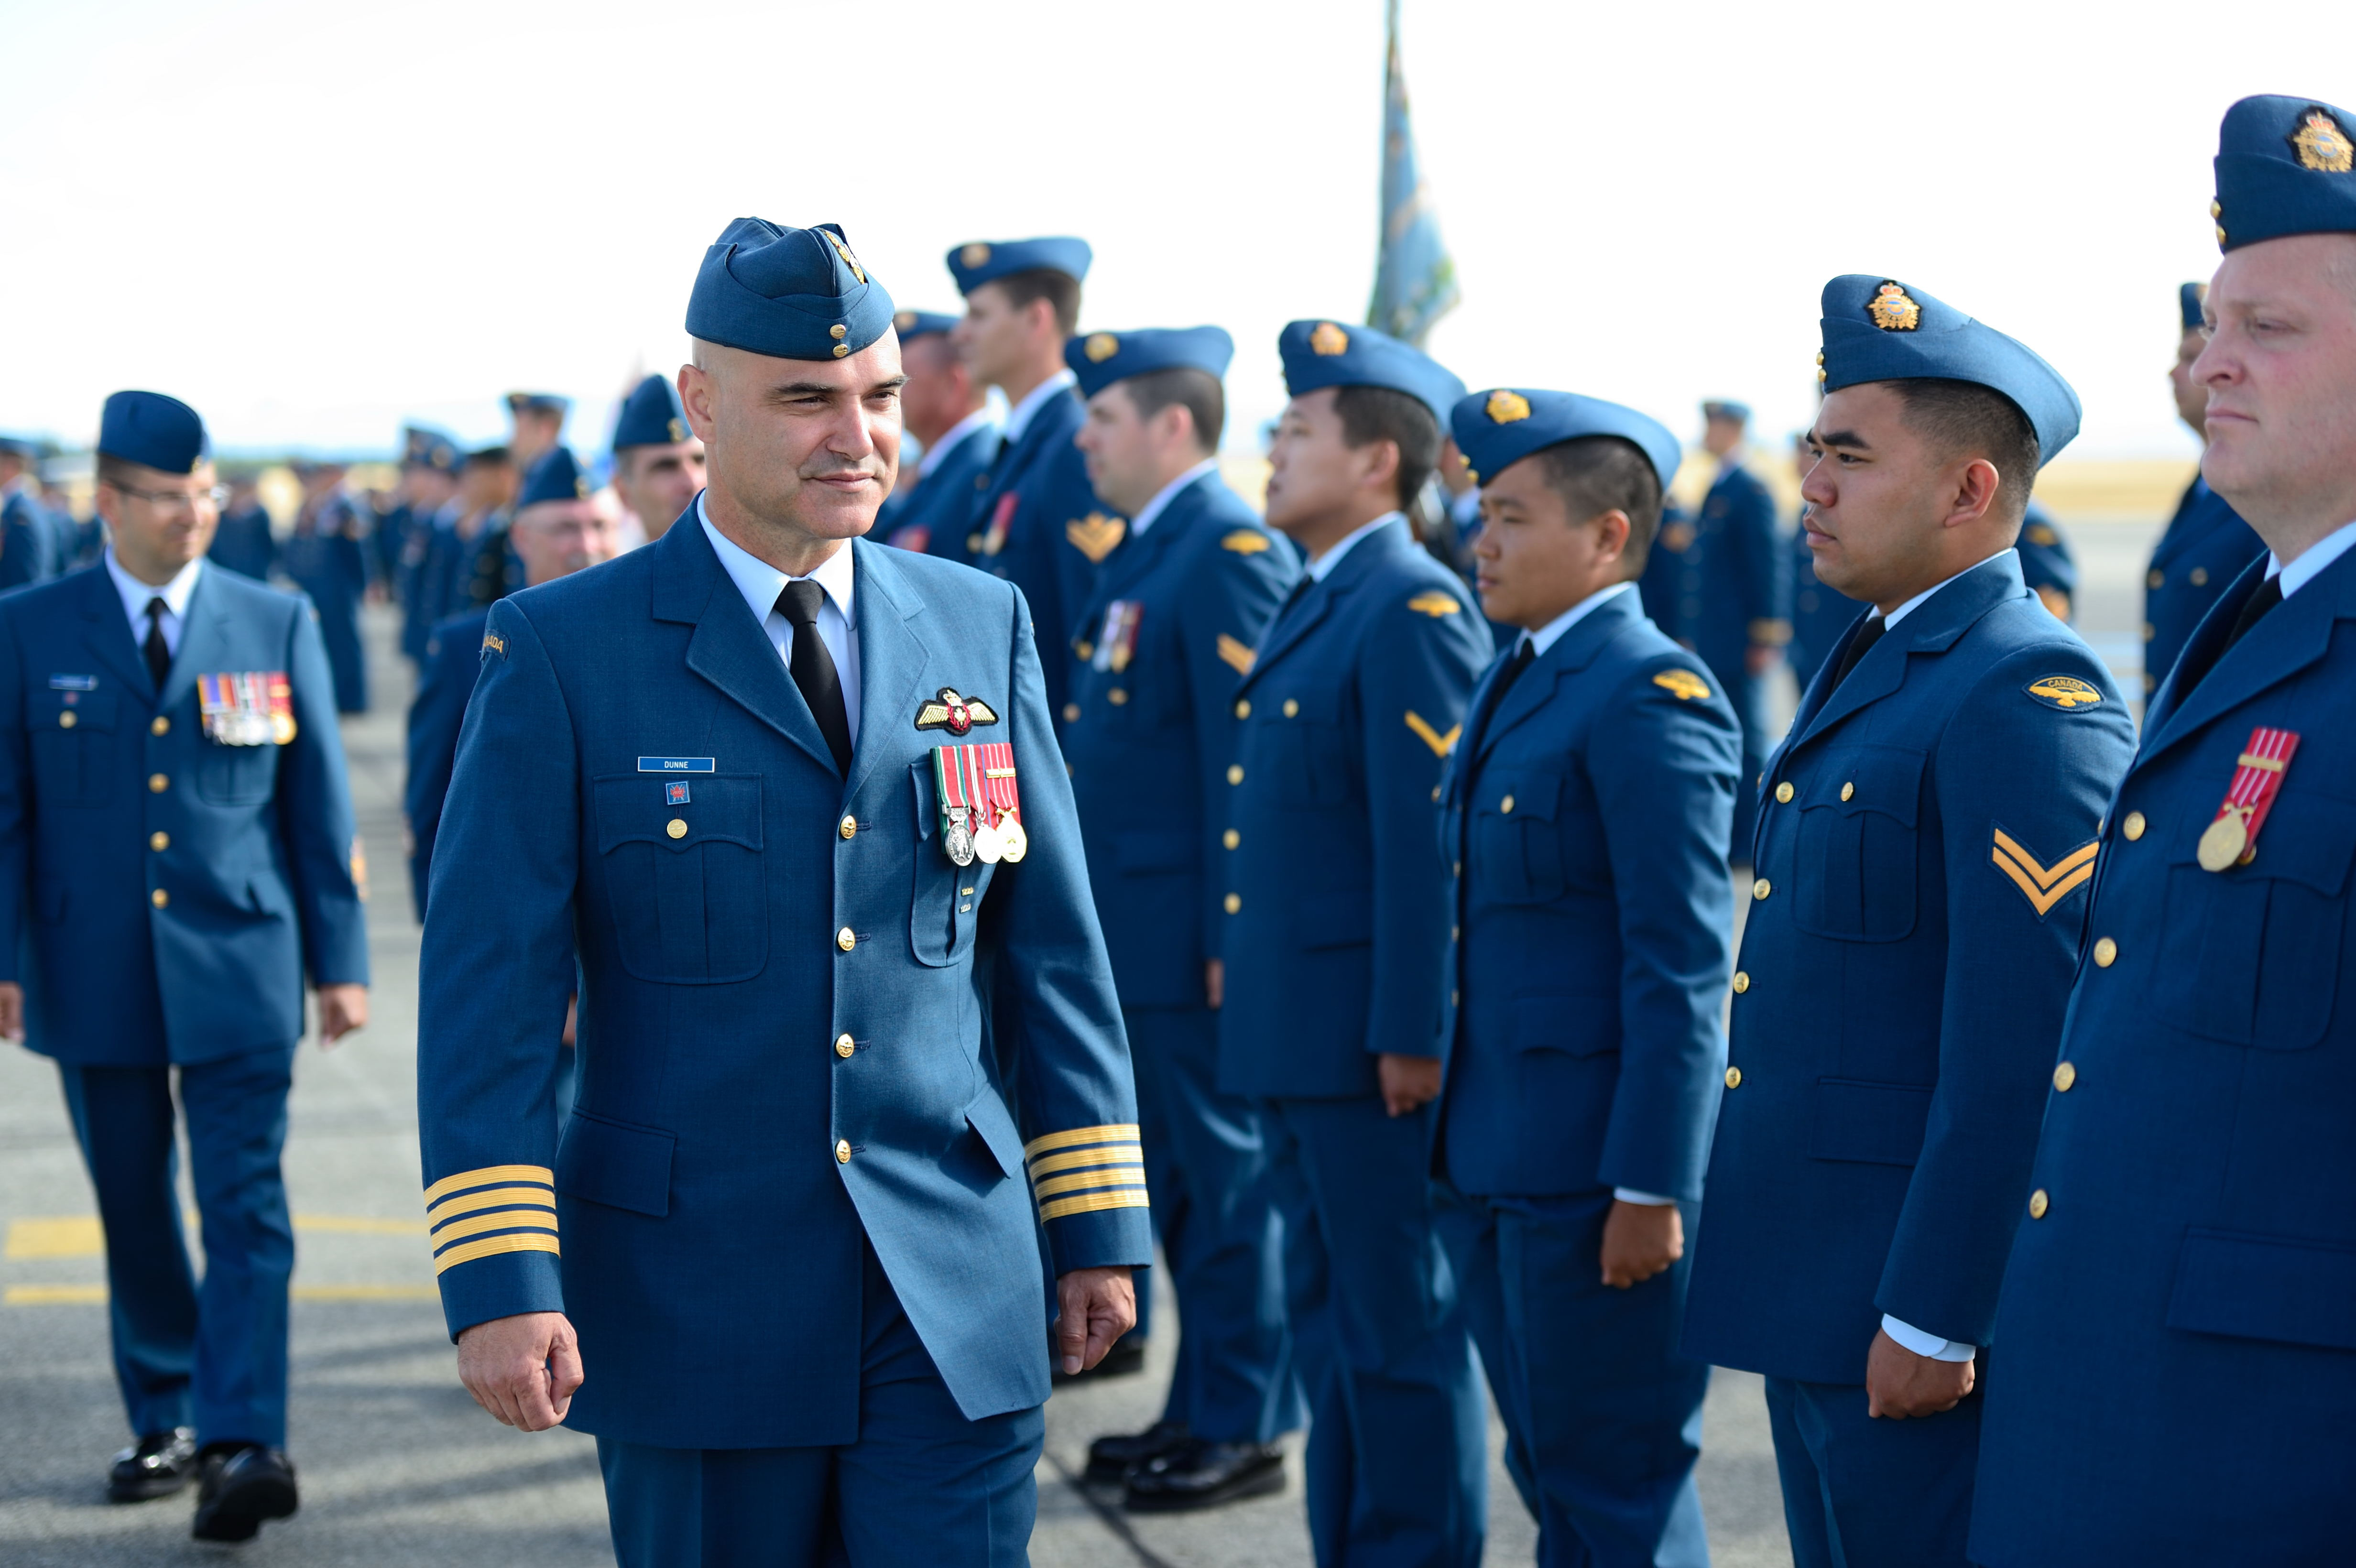 Article | Royal Canadian Air Force | News Release | Command of 19 ...